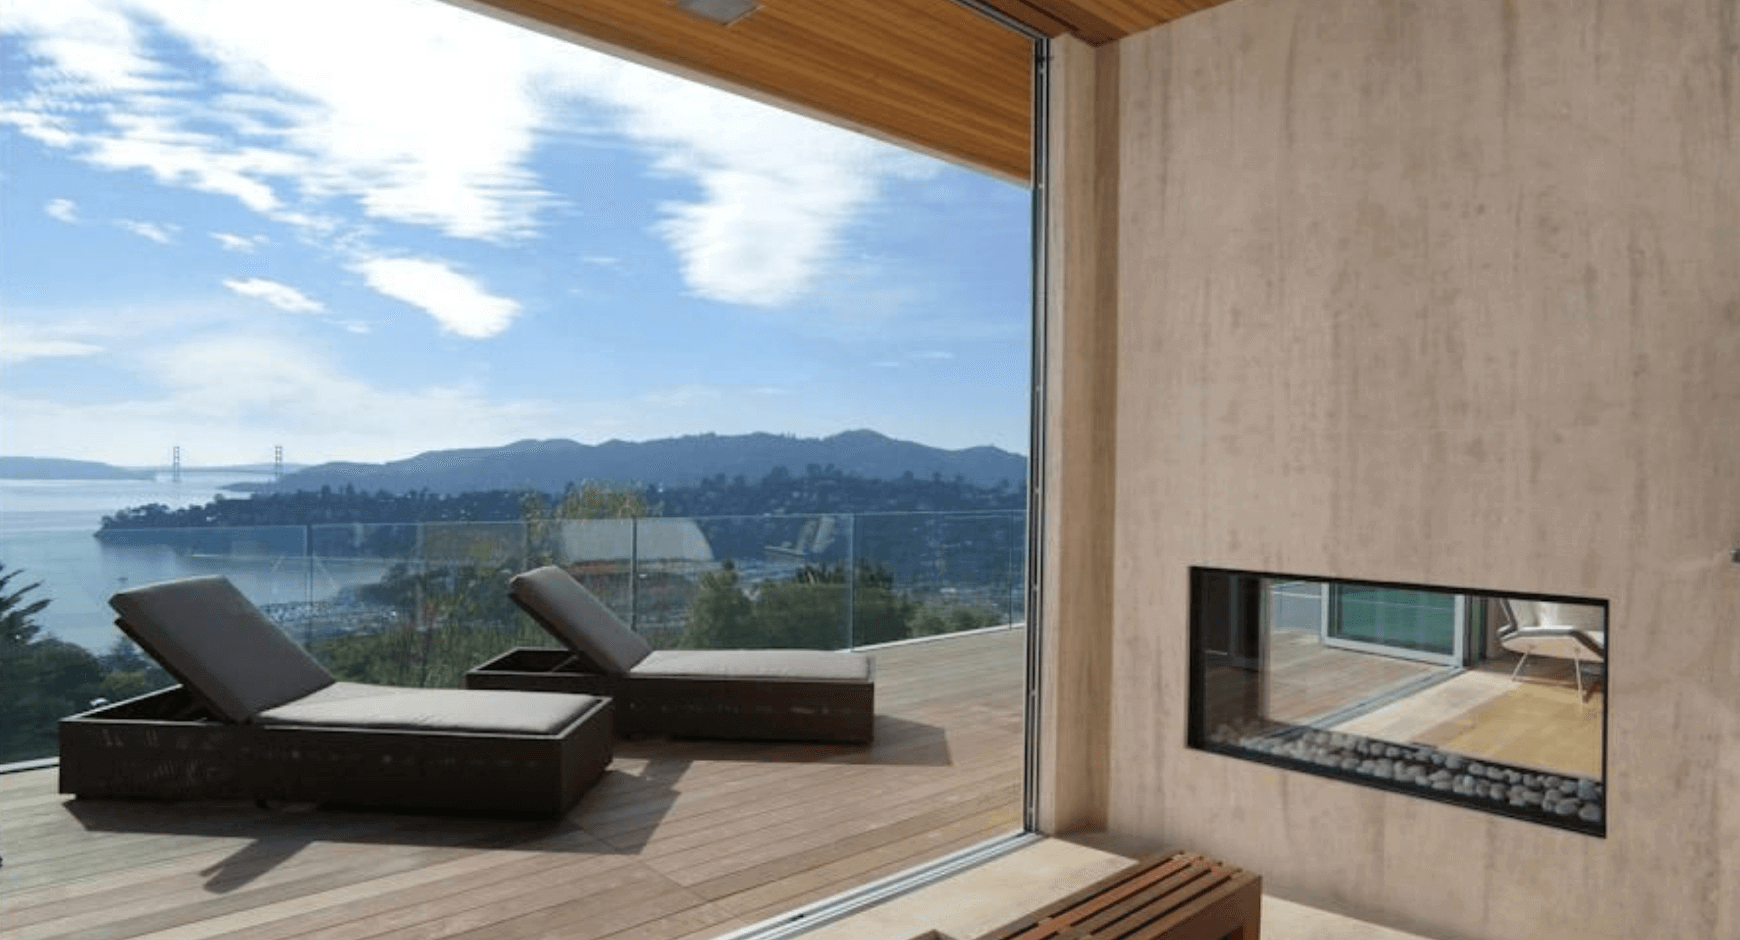 Top Floor Patio With a Gas Fireplace and a Breathtaking View